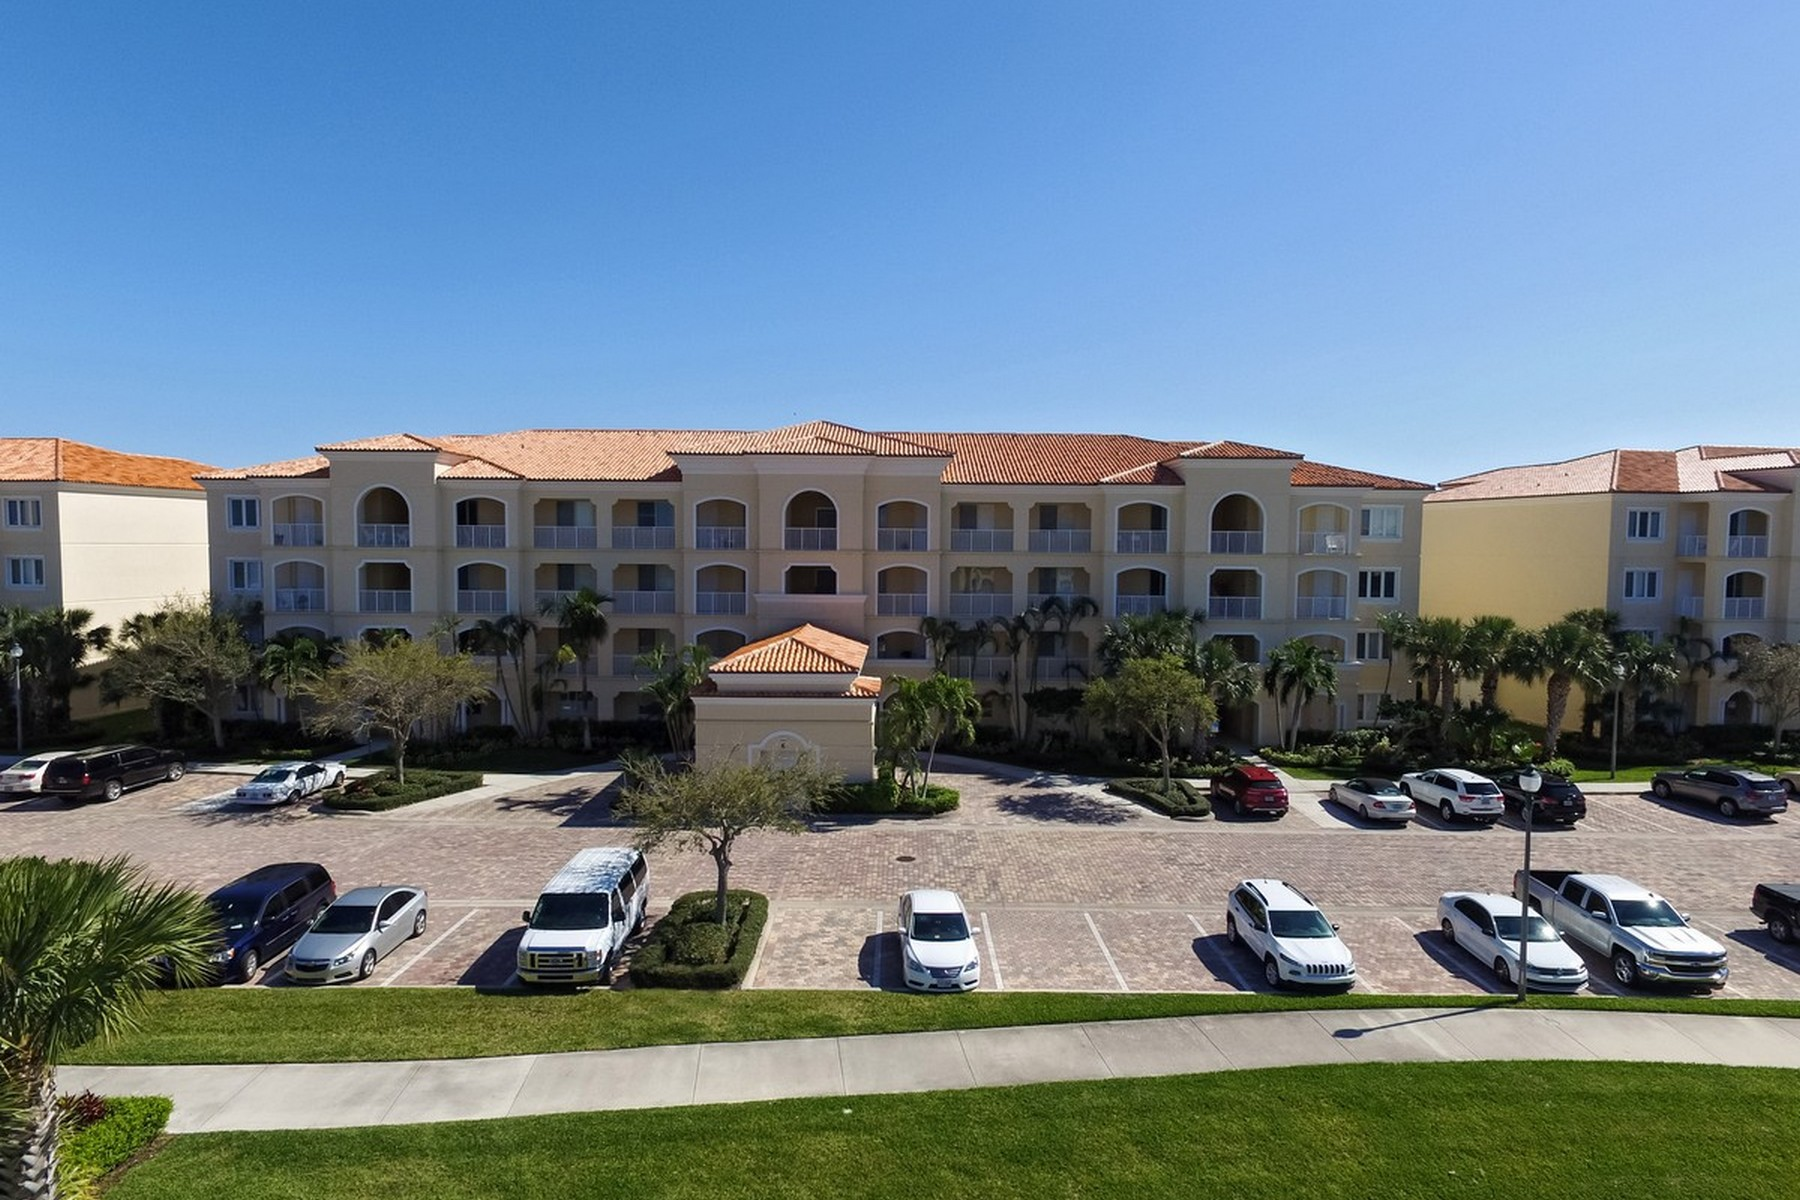 Condominium for Sale at Harbour Isle, Beachside Florida Resort Living 6 Harbour Isle Drive #306 Fort Pierce, Florida 34949 United States